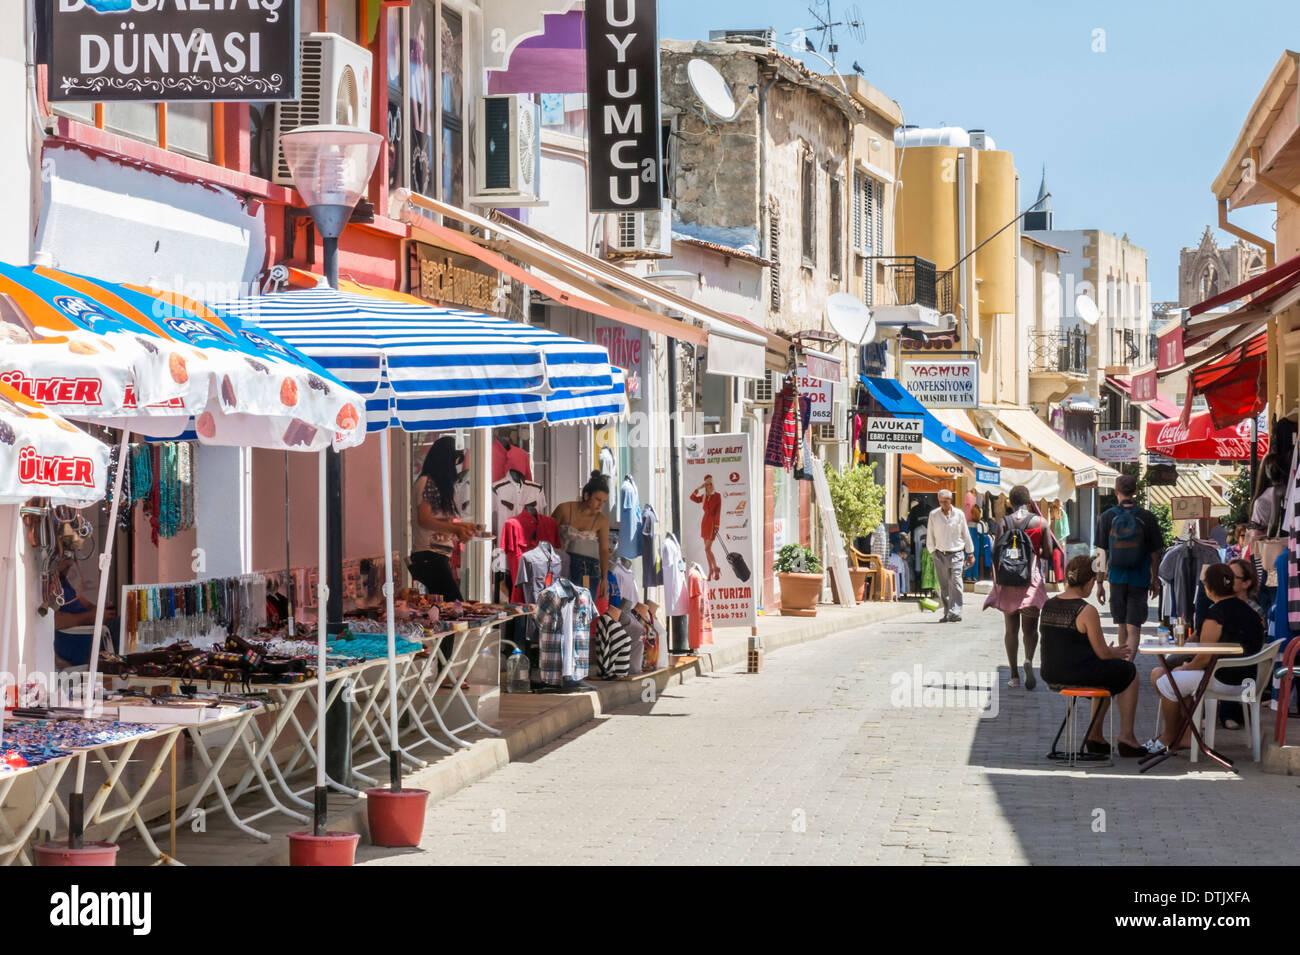 Shops and Bars in Famagusta Cyprus - Stock Image